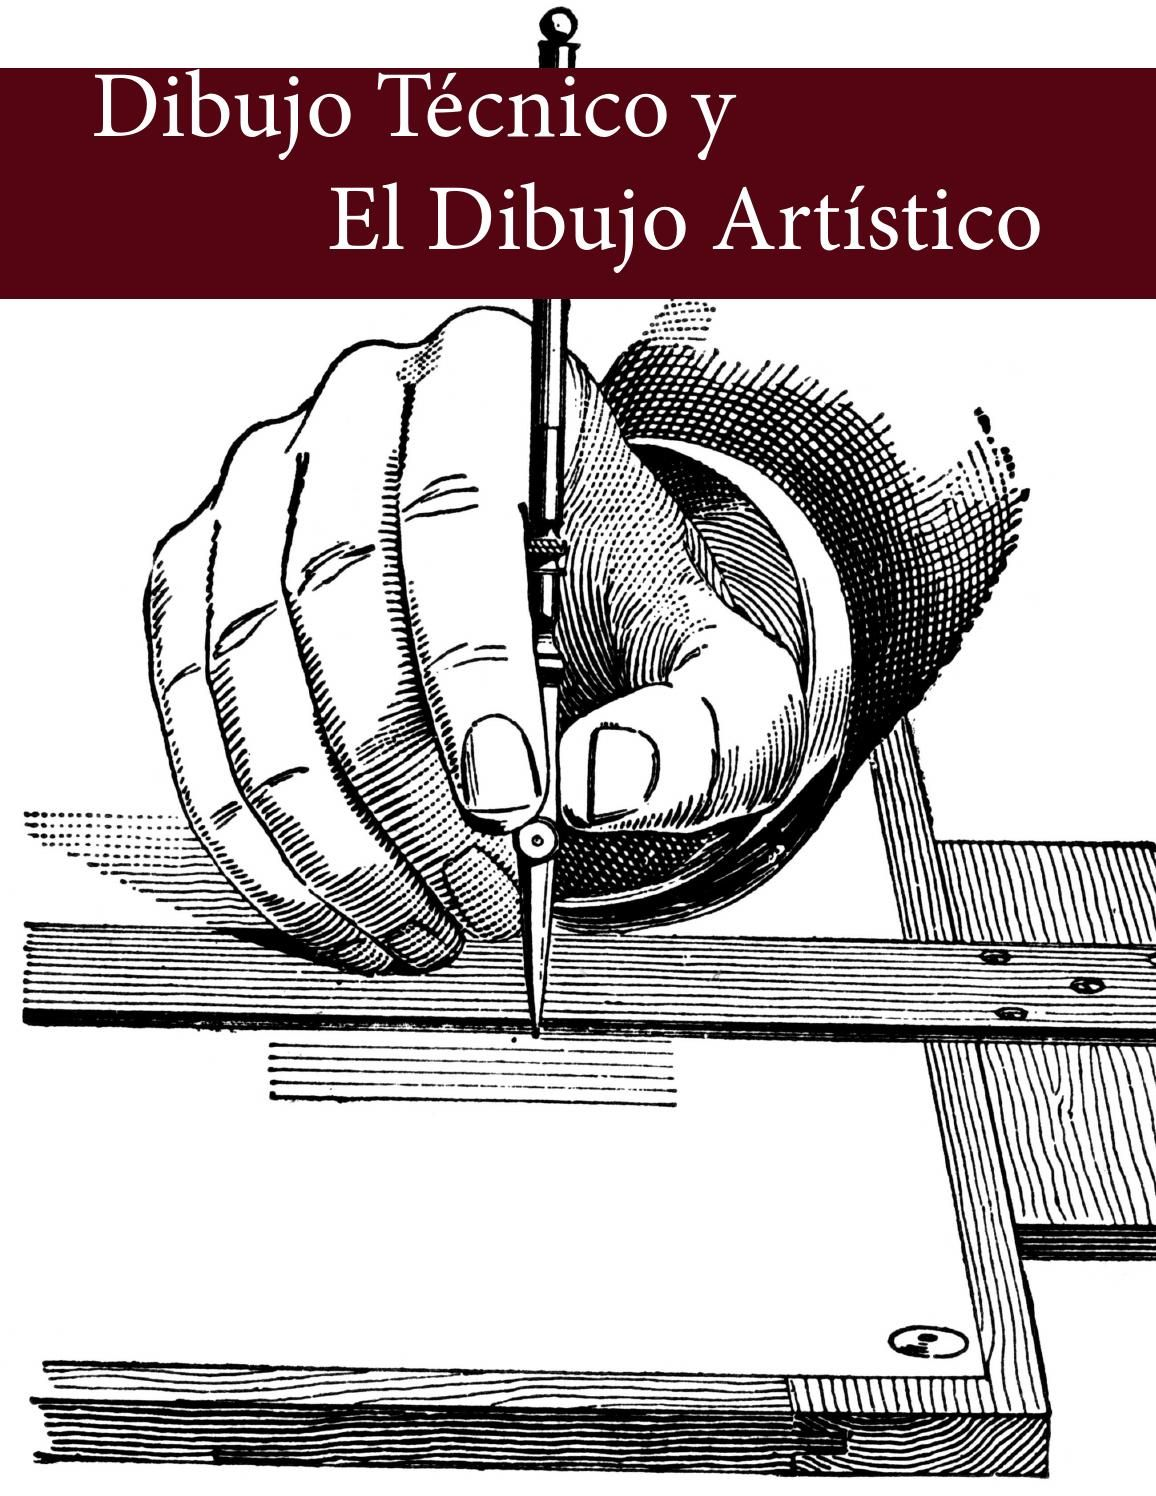 Dibujo Tecnico Artistico Interesting Drawings Book Art Learn Art